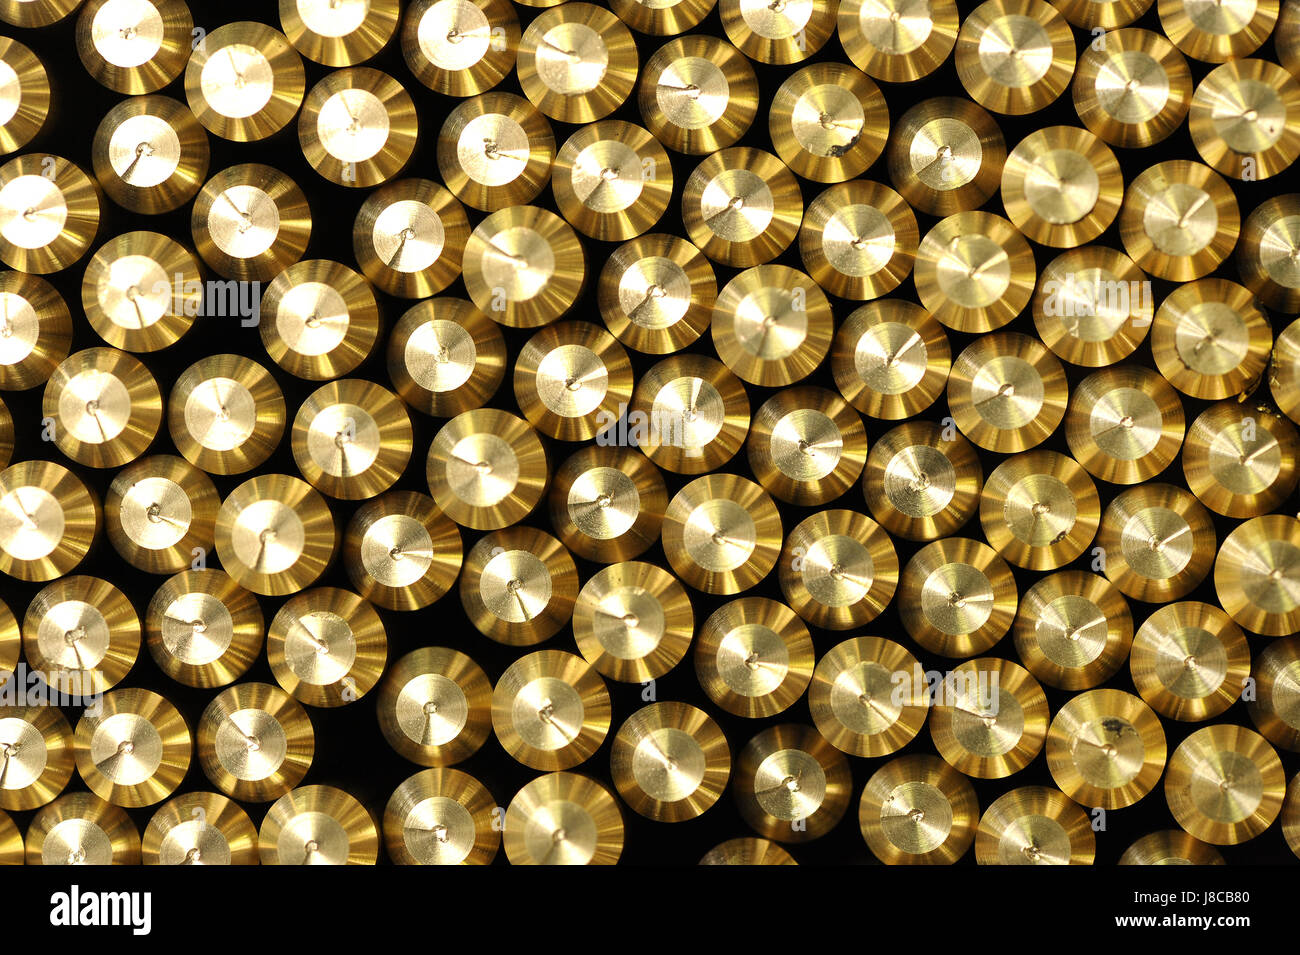 Background pattern of the ends of shiny bevelled brass rods for use as a raw material in industry viewed from above - Stock Image